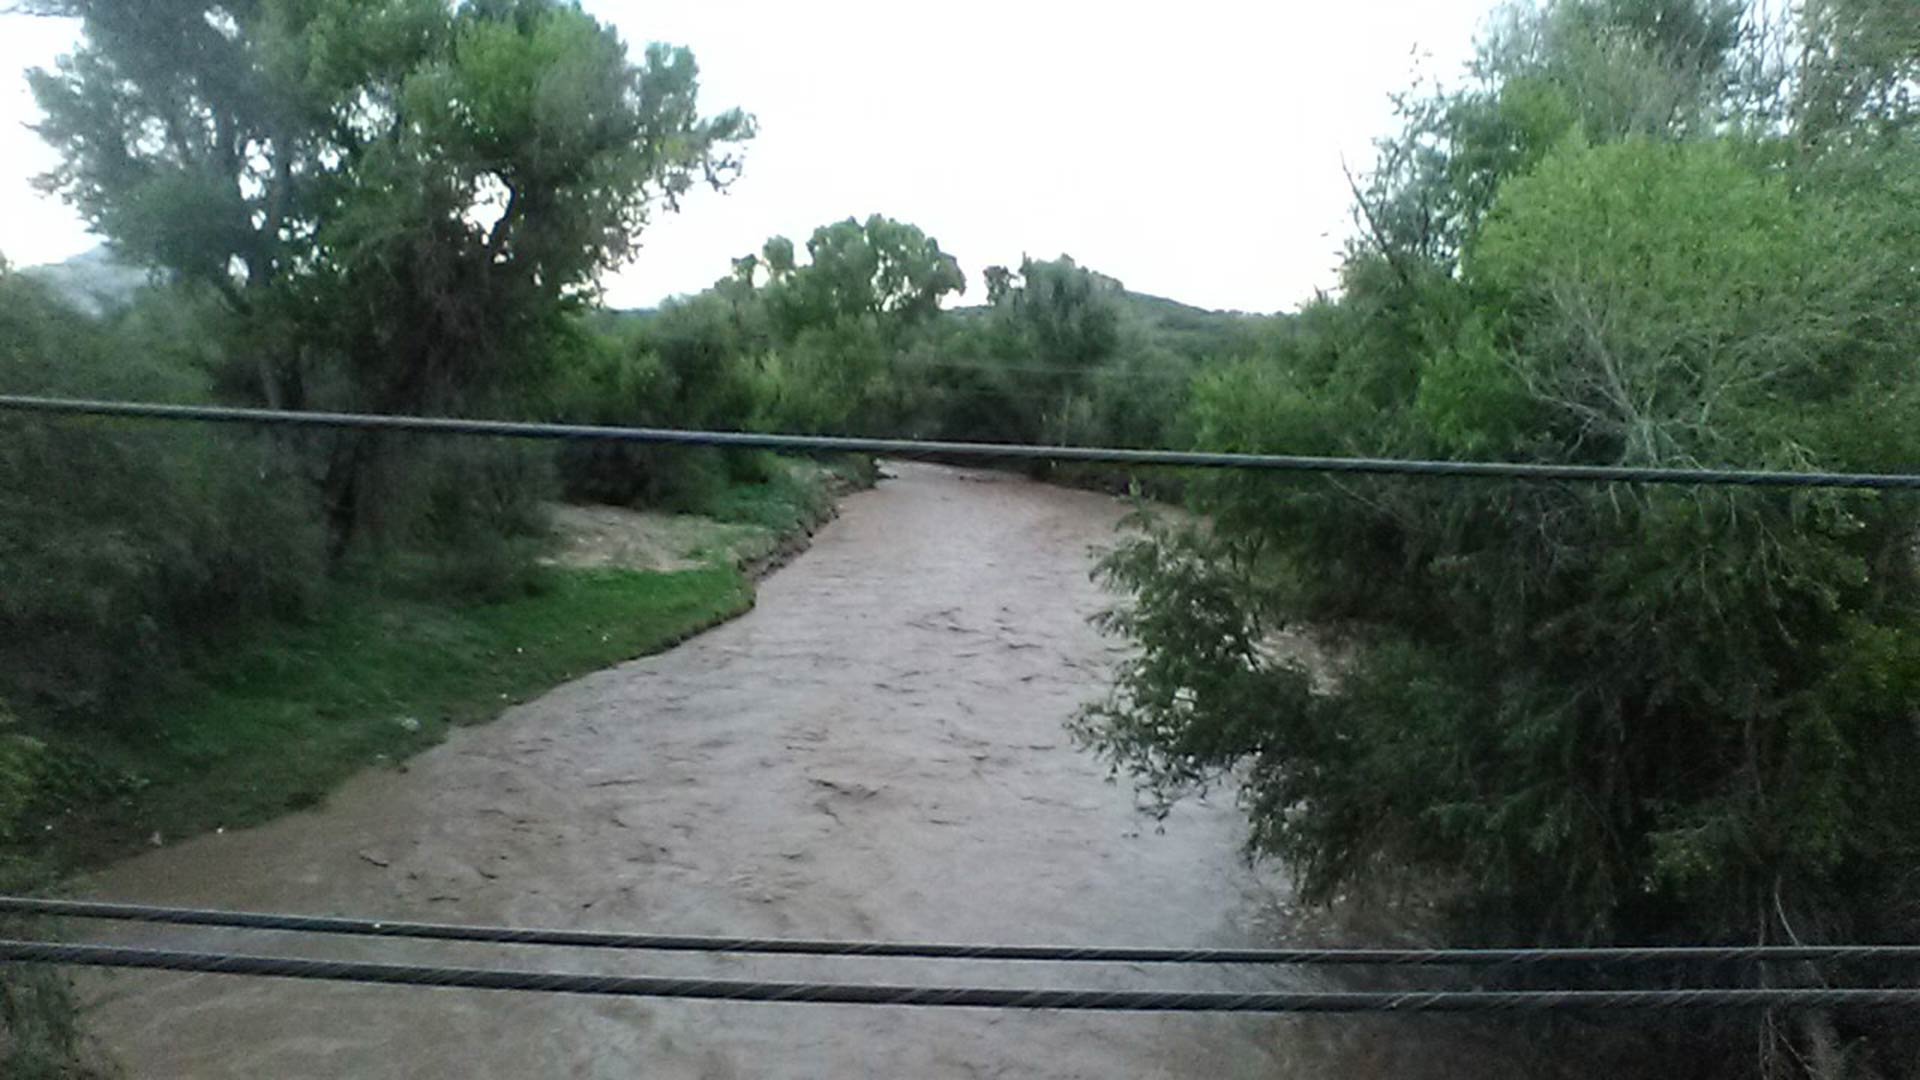 Nogales Wash in downtown Nogales, Arizona running bank to bank. (August 13, 2018)